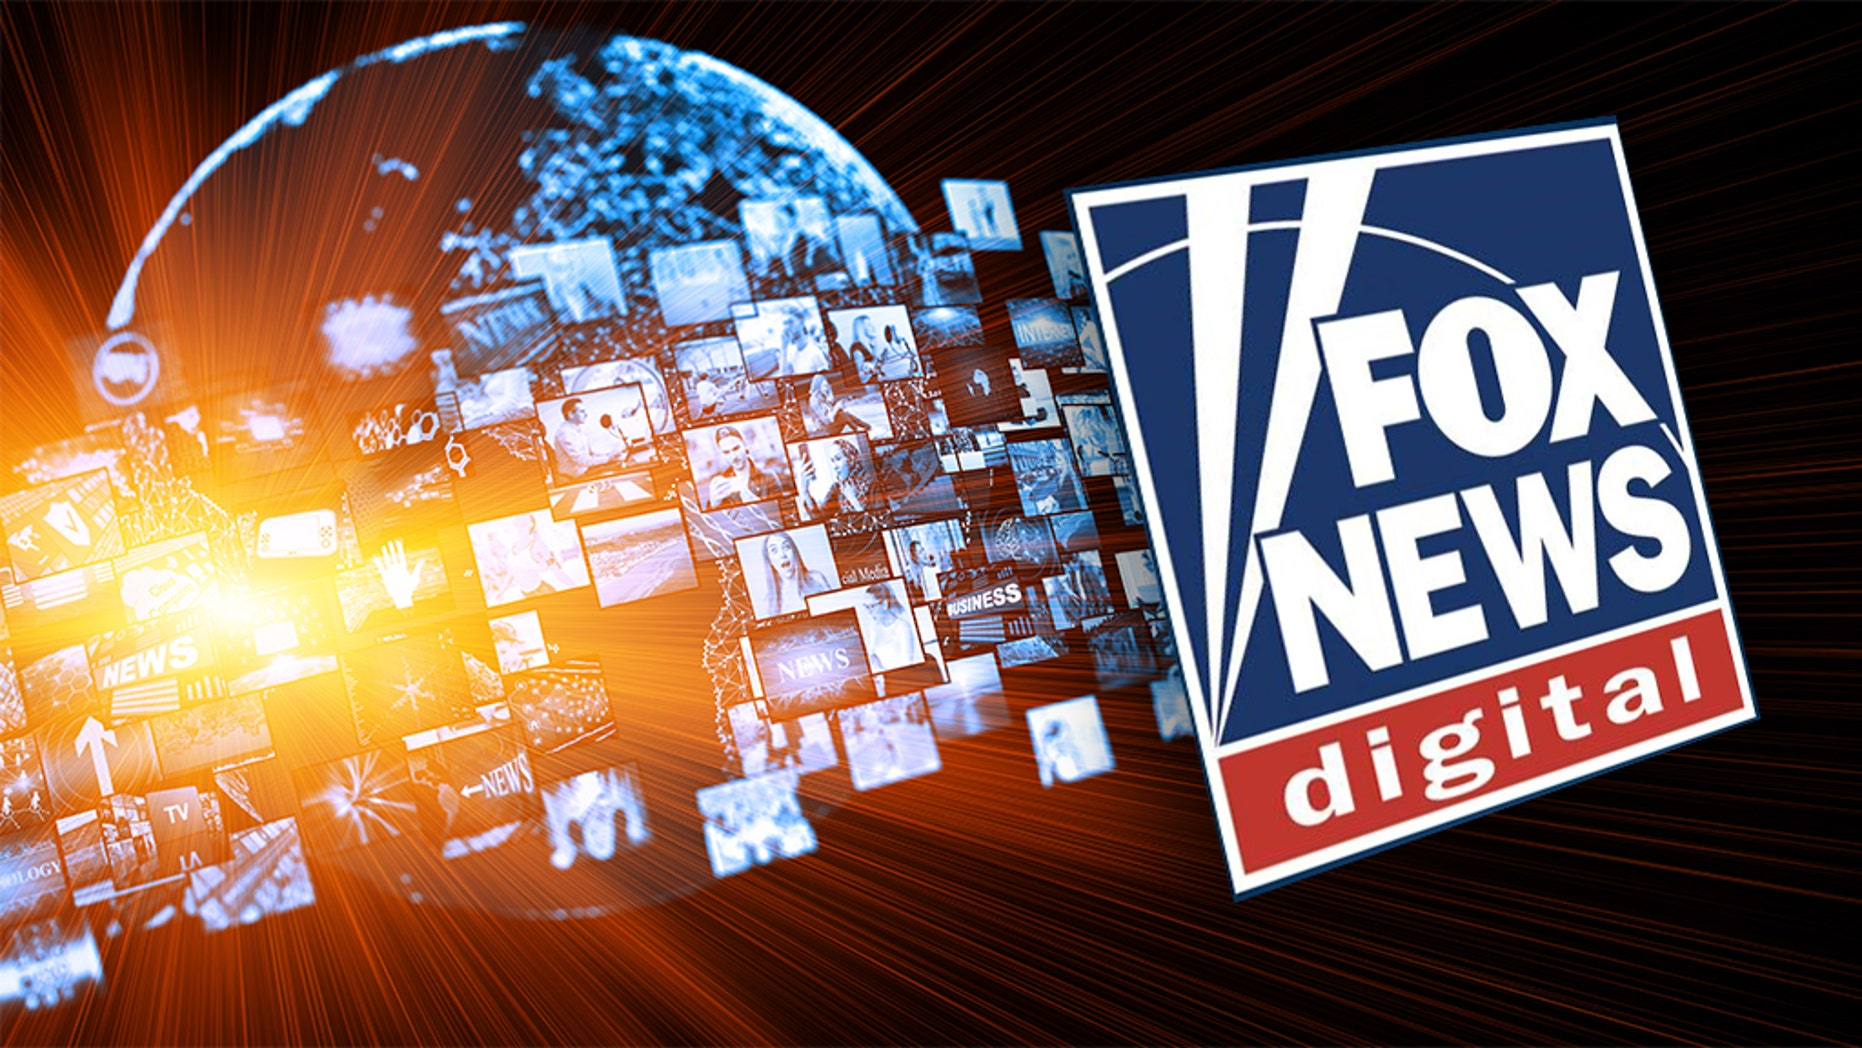 Fox News' mobile app picked up 7.5 million unique visitors during May 2019, compared to CNN's 6.6 million.